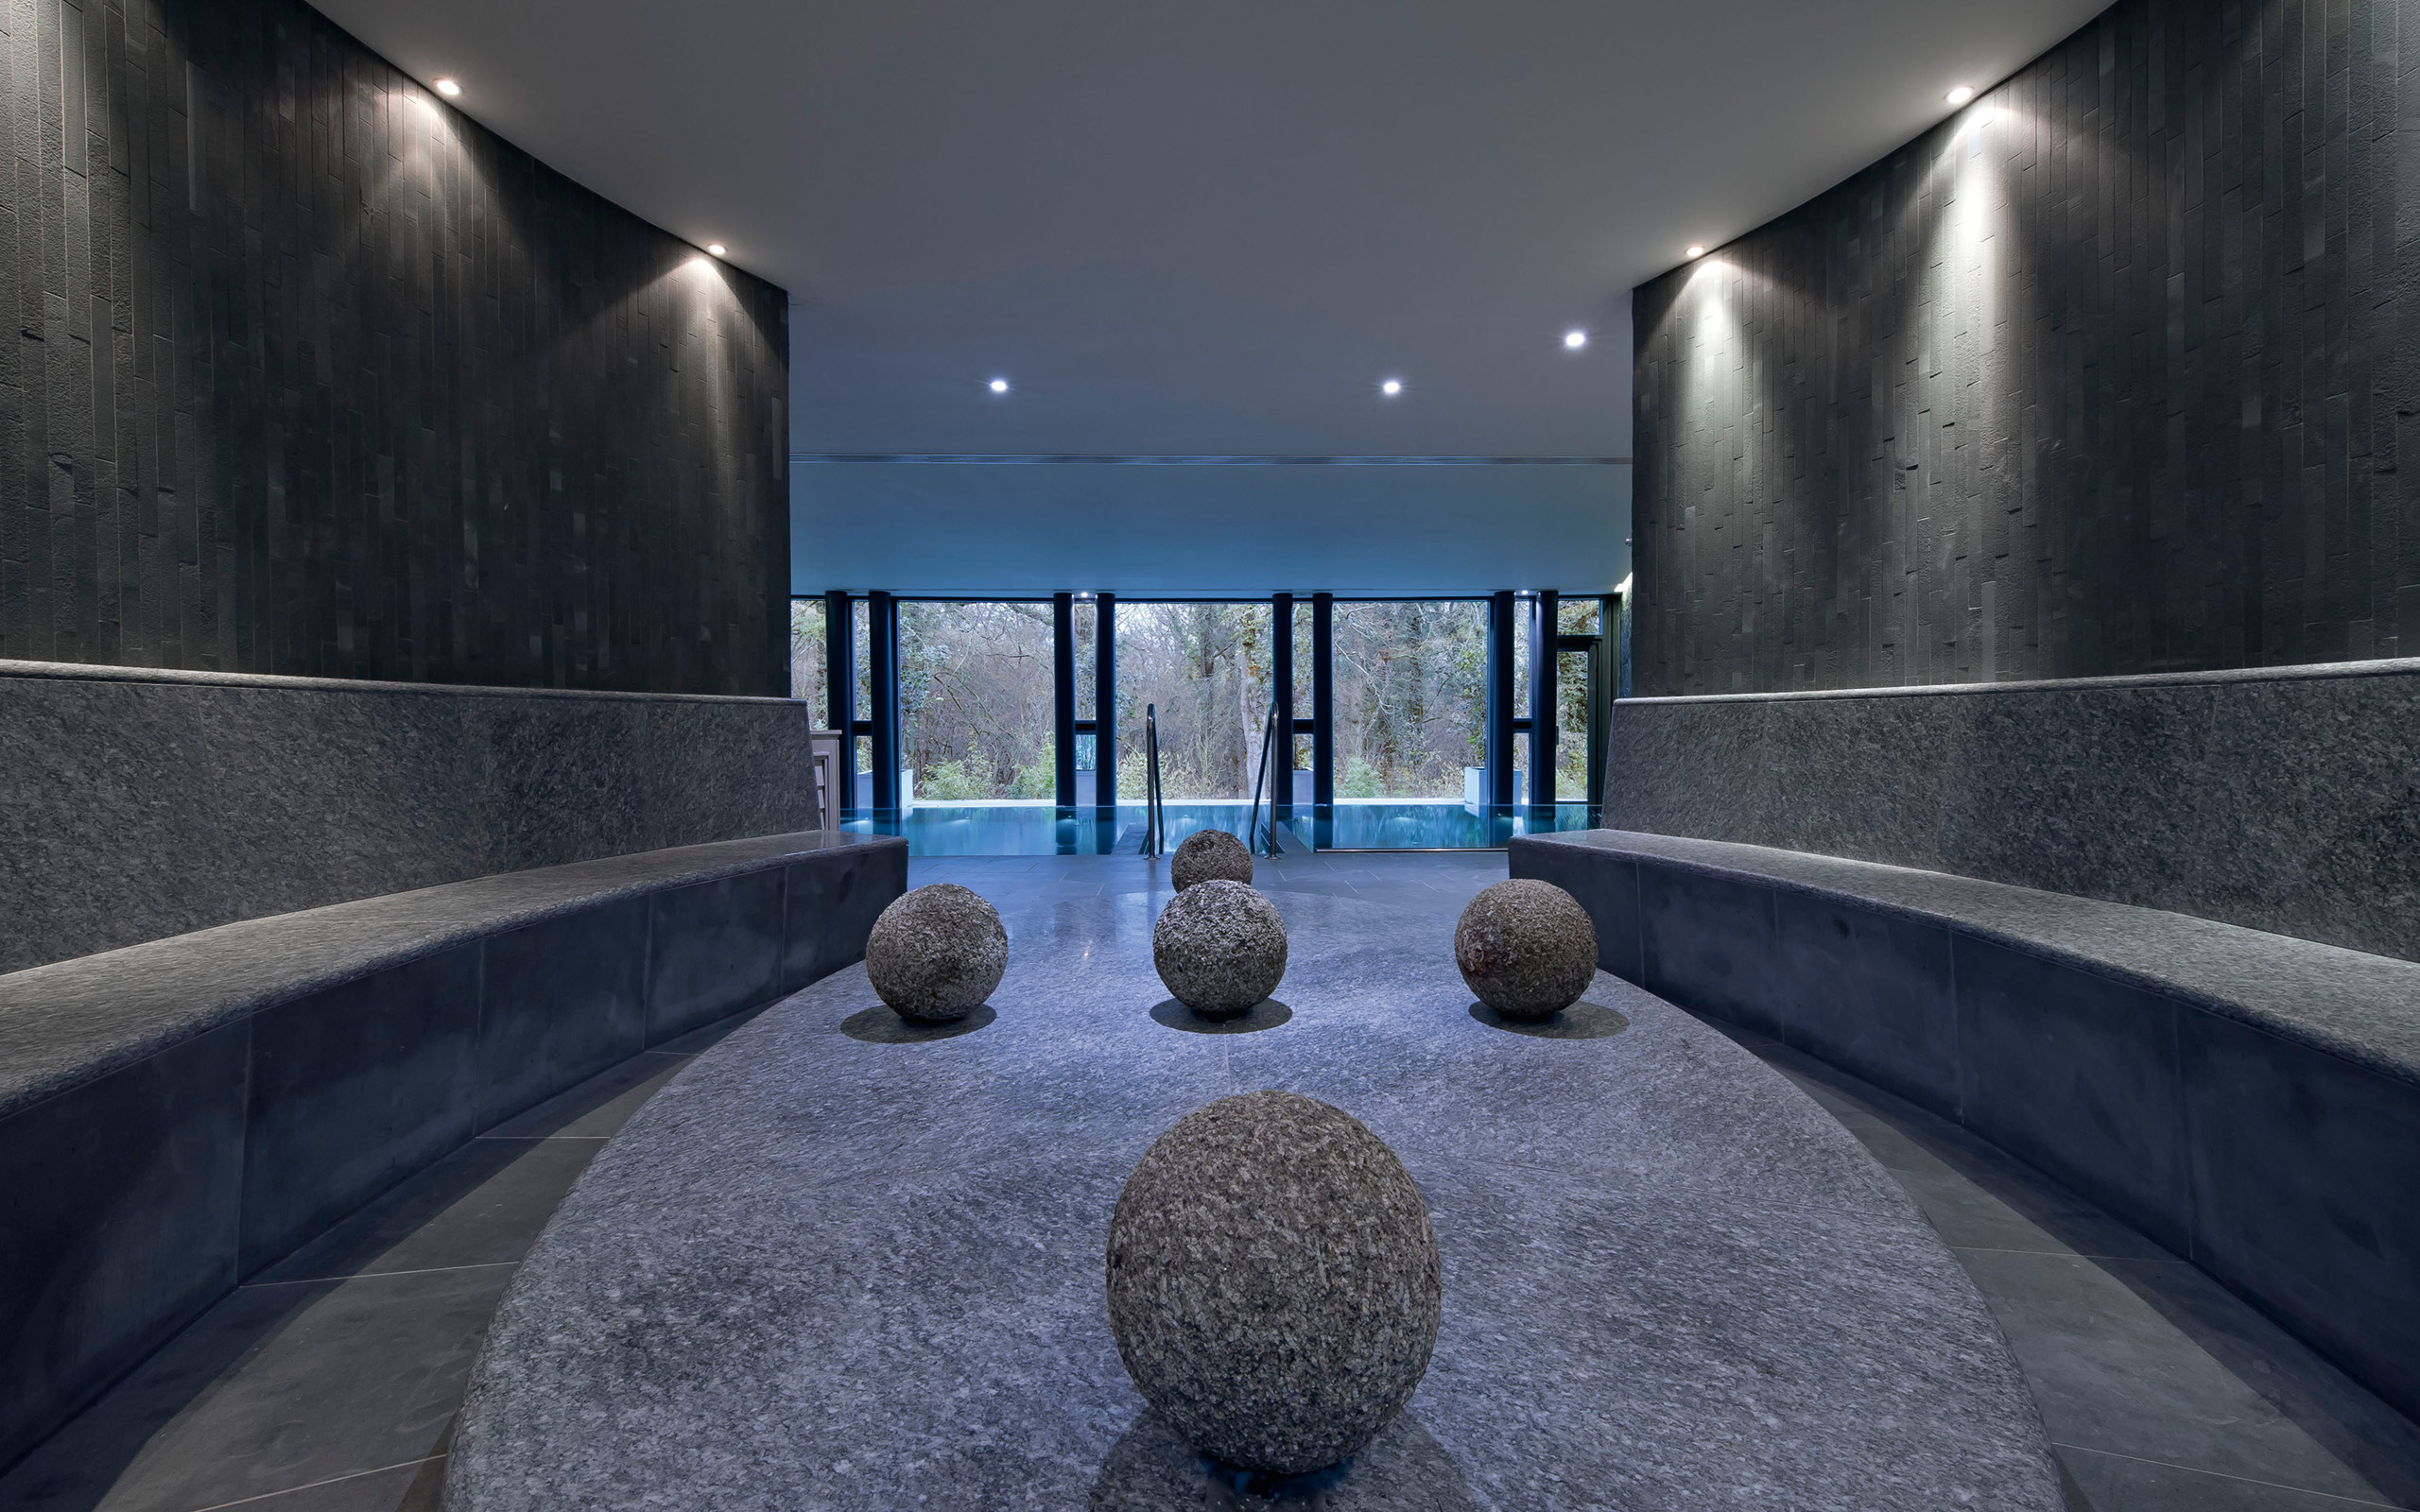 Klafs hotel referenties lime wood hotel - Zen doucheruimte ...